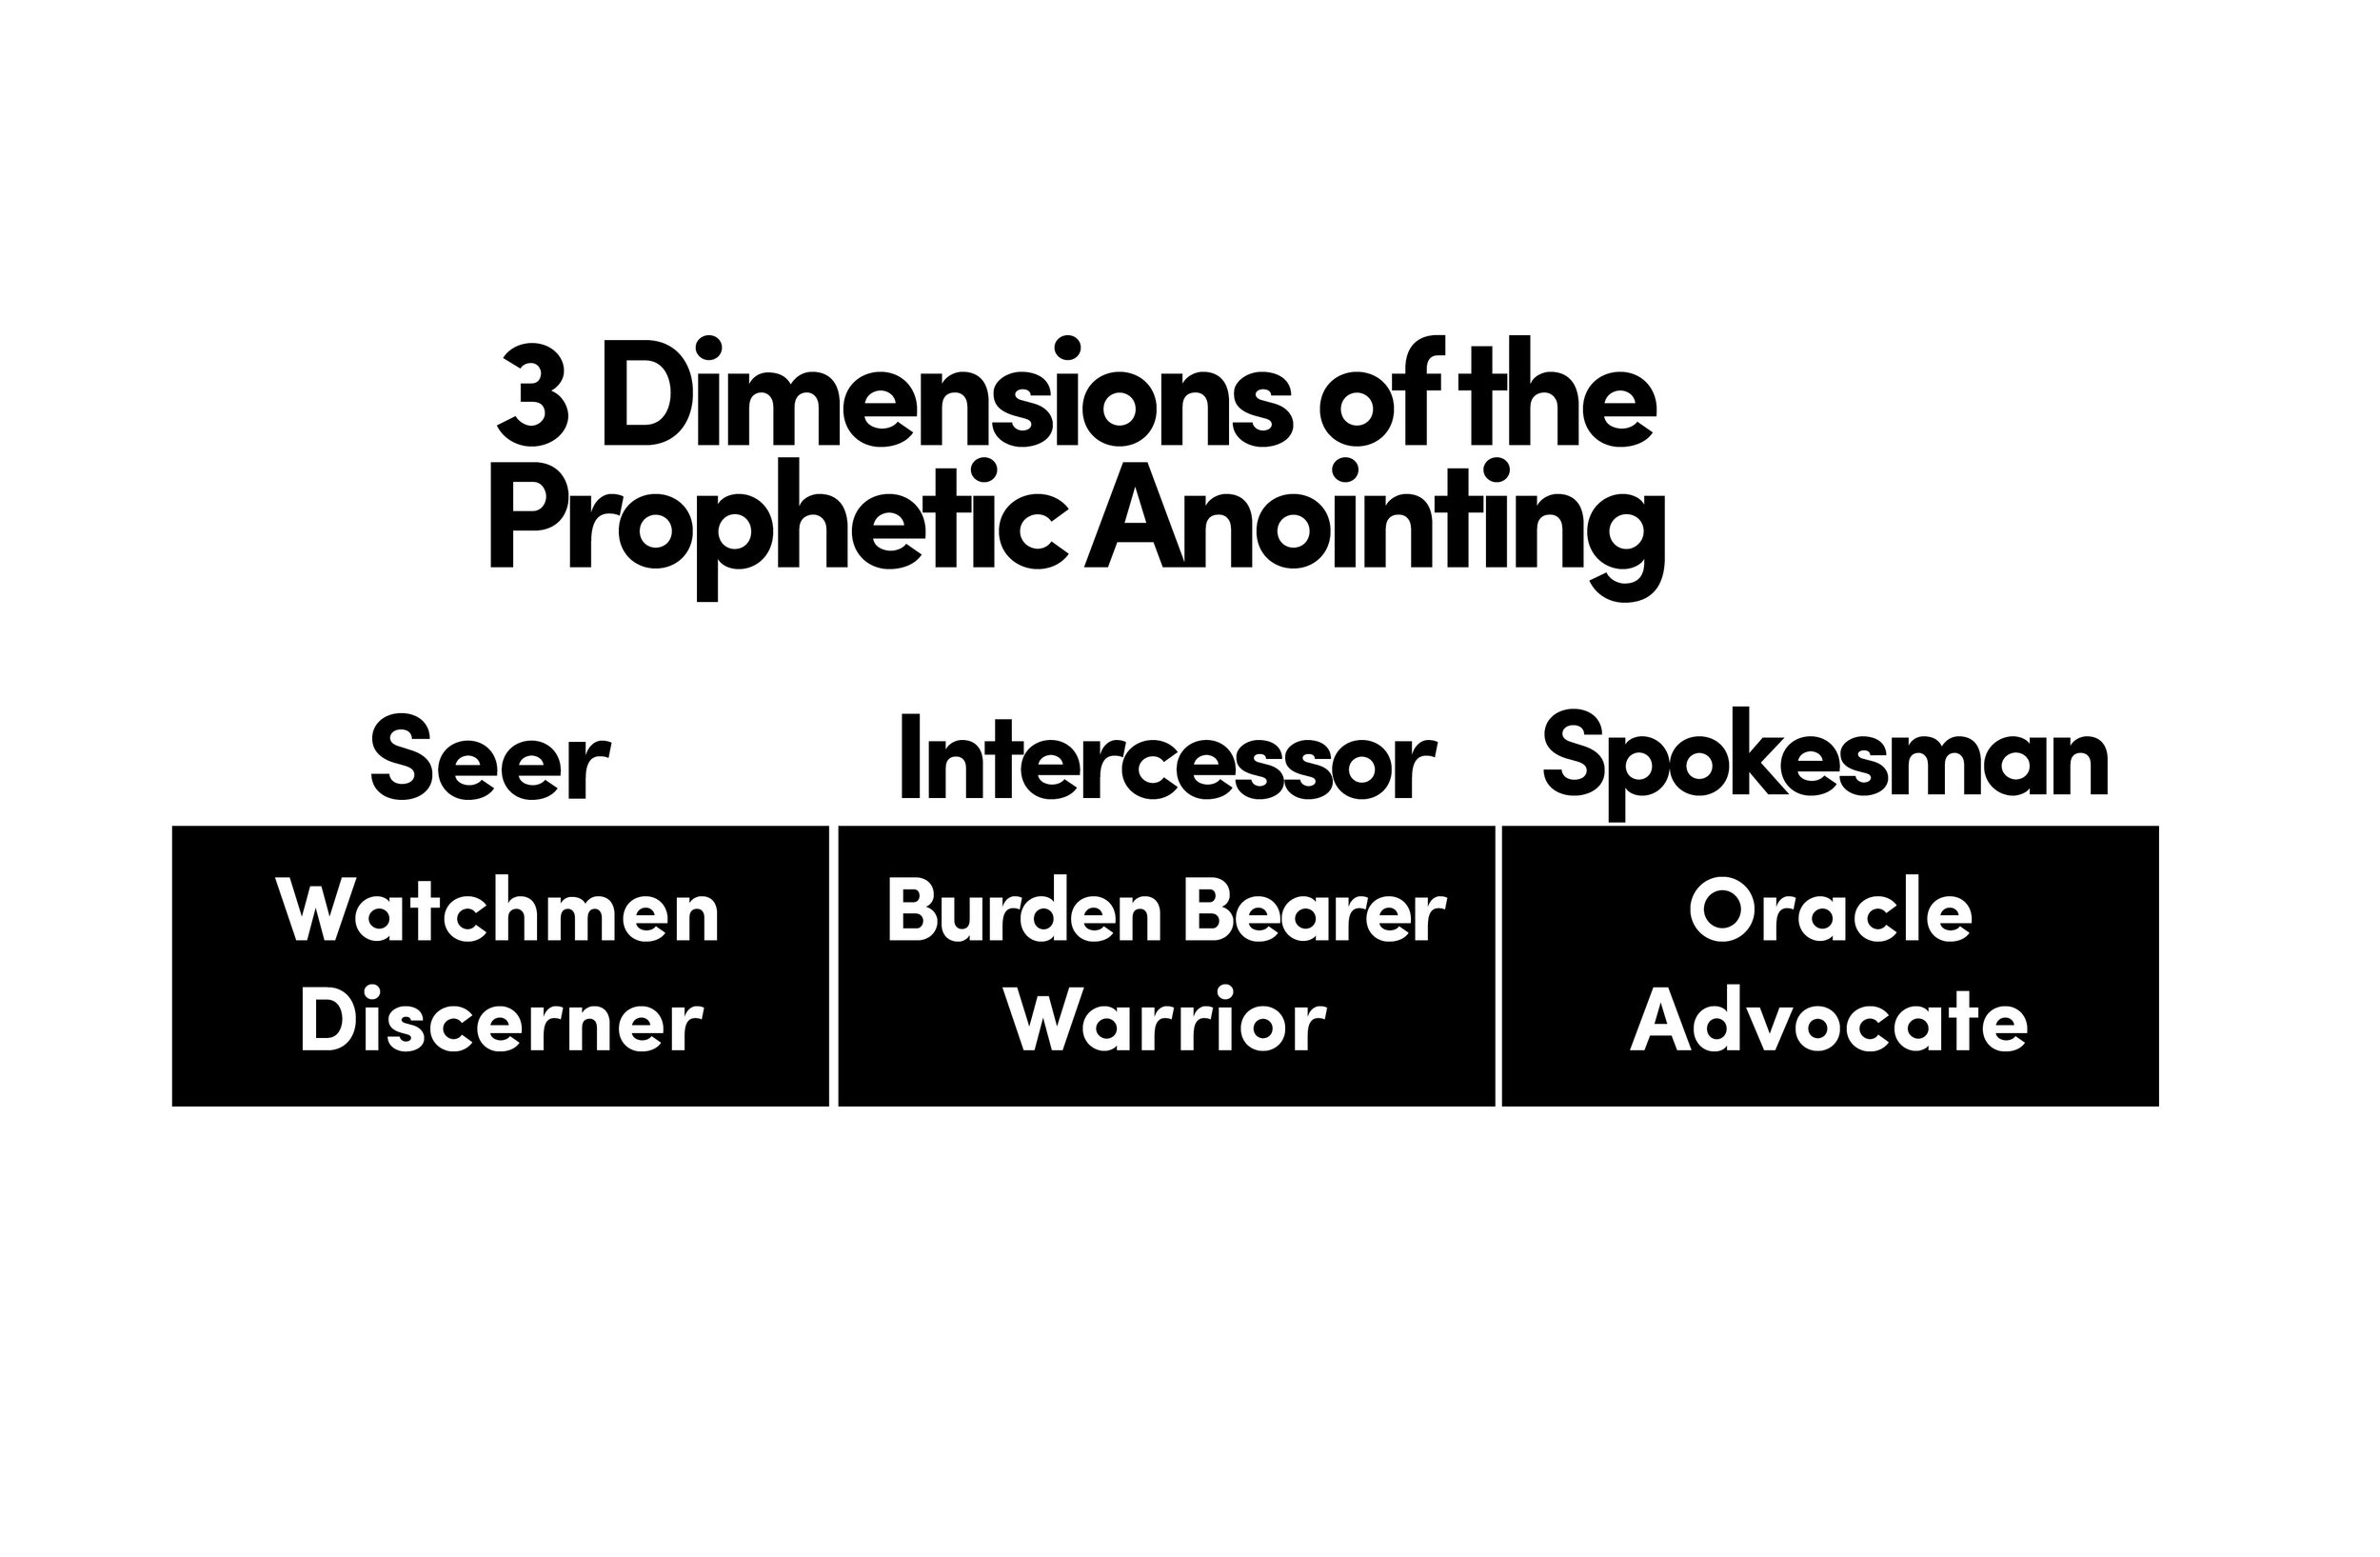 dimensions of the prophetic anointing.jpg